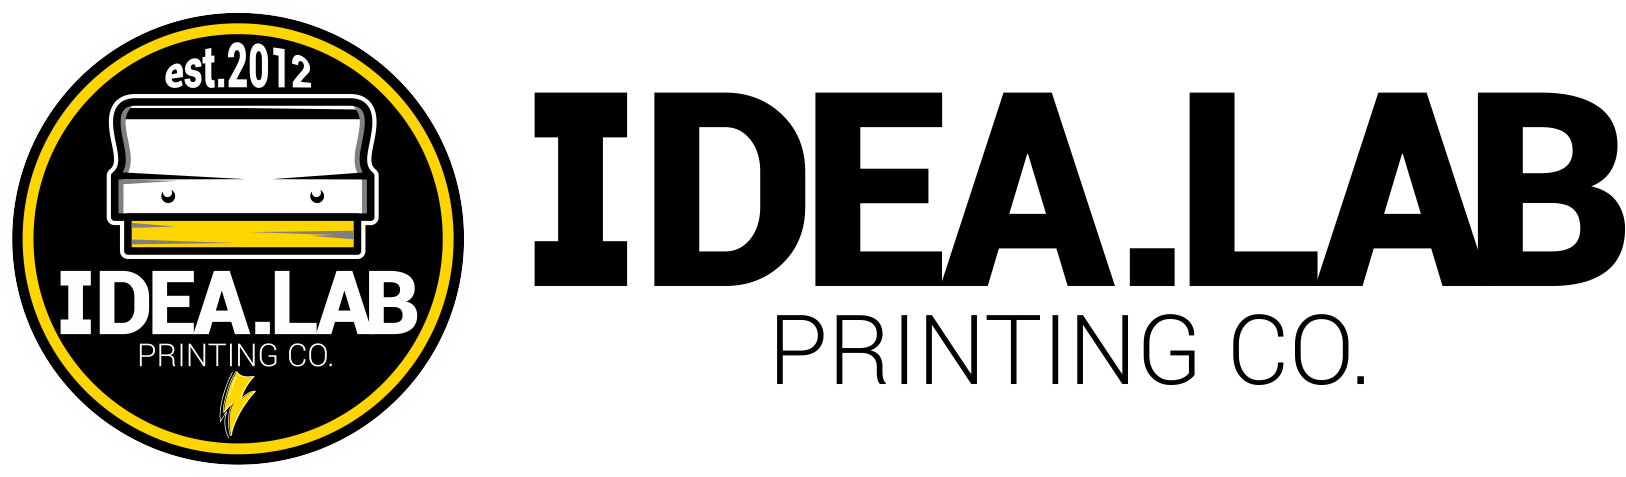 idea.lab-logo